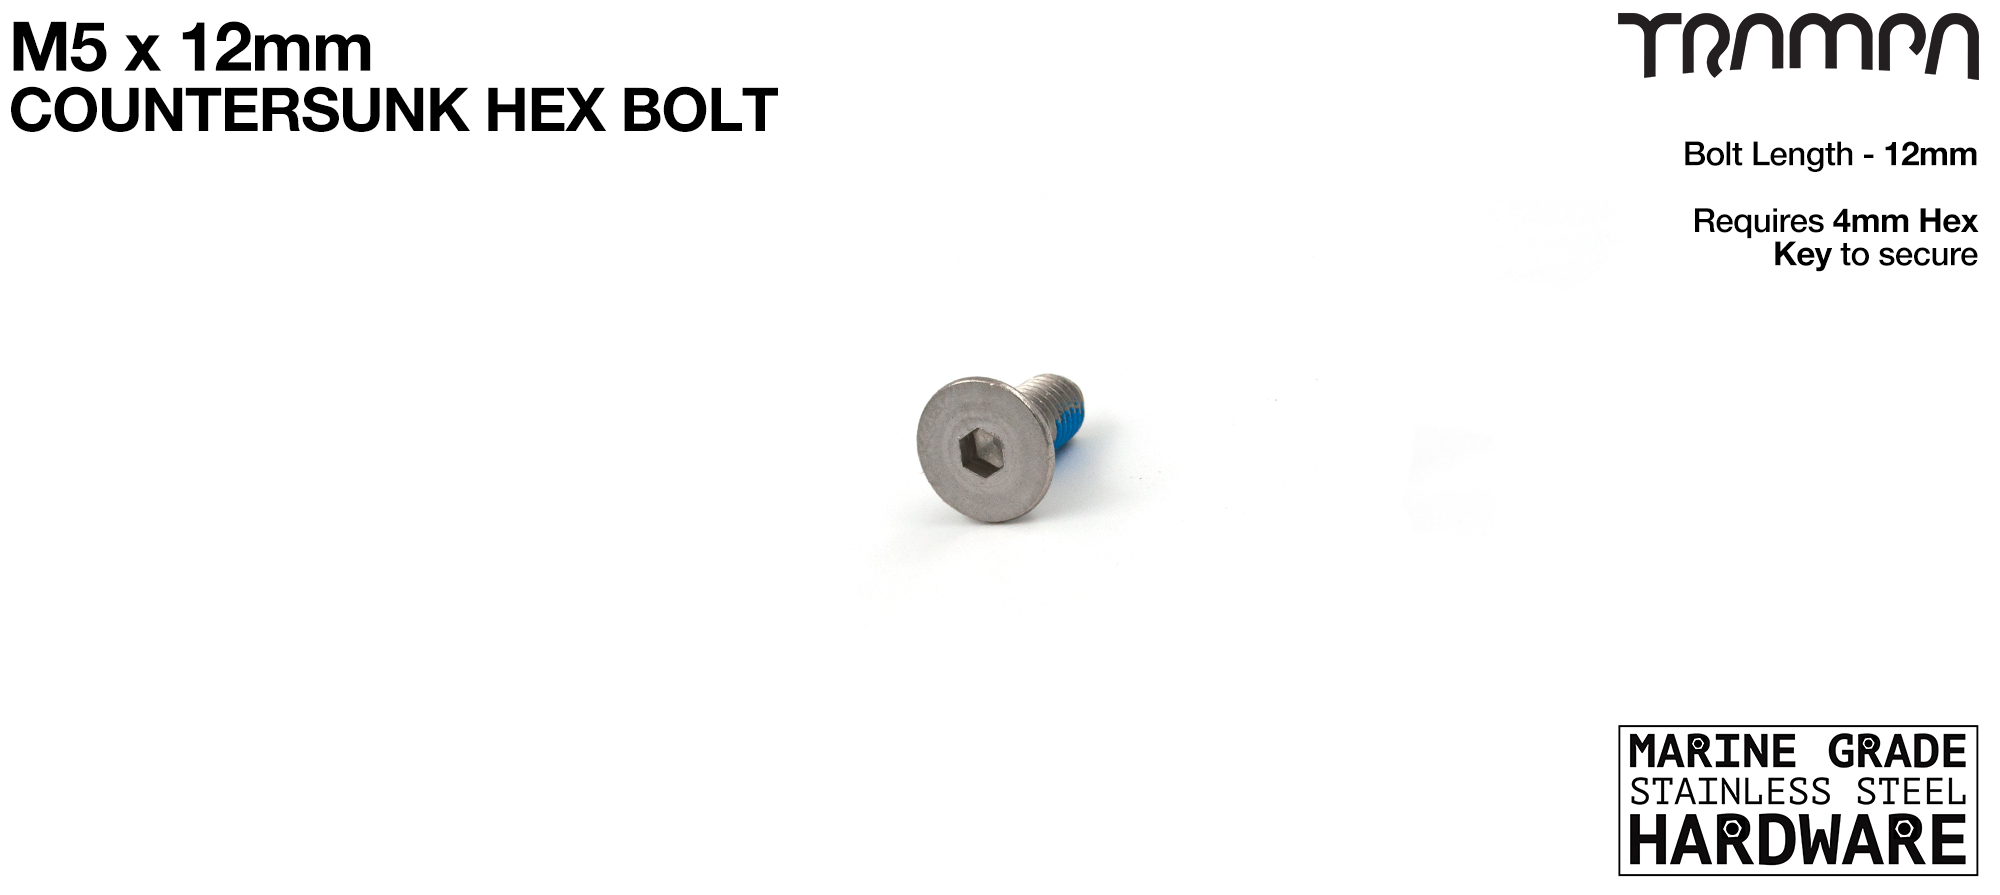 M5 x 12mm Countersunk Bolt - Marine Grade Stainless steel with locking paste